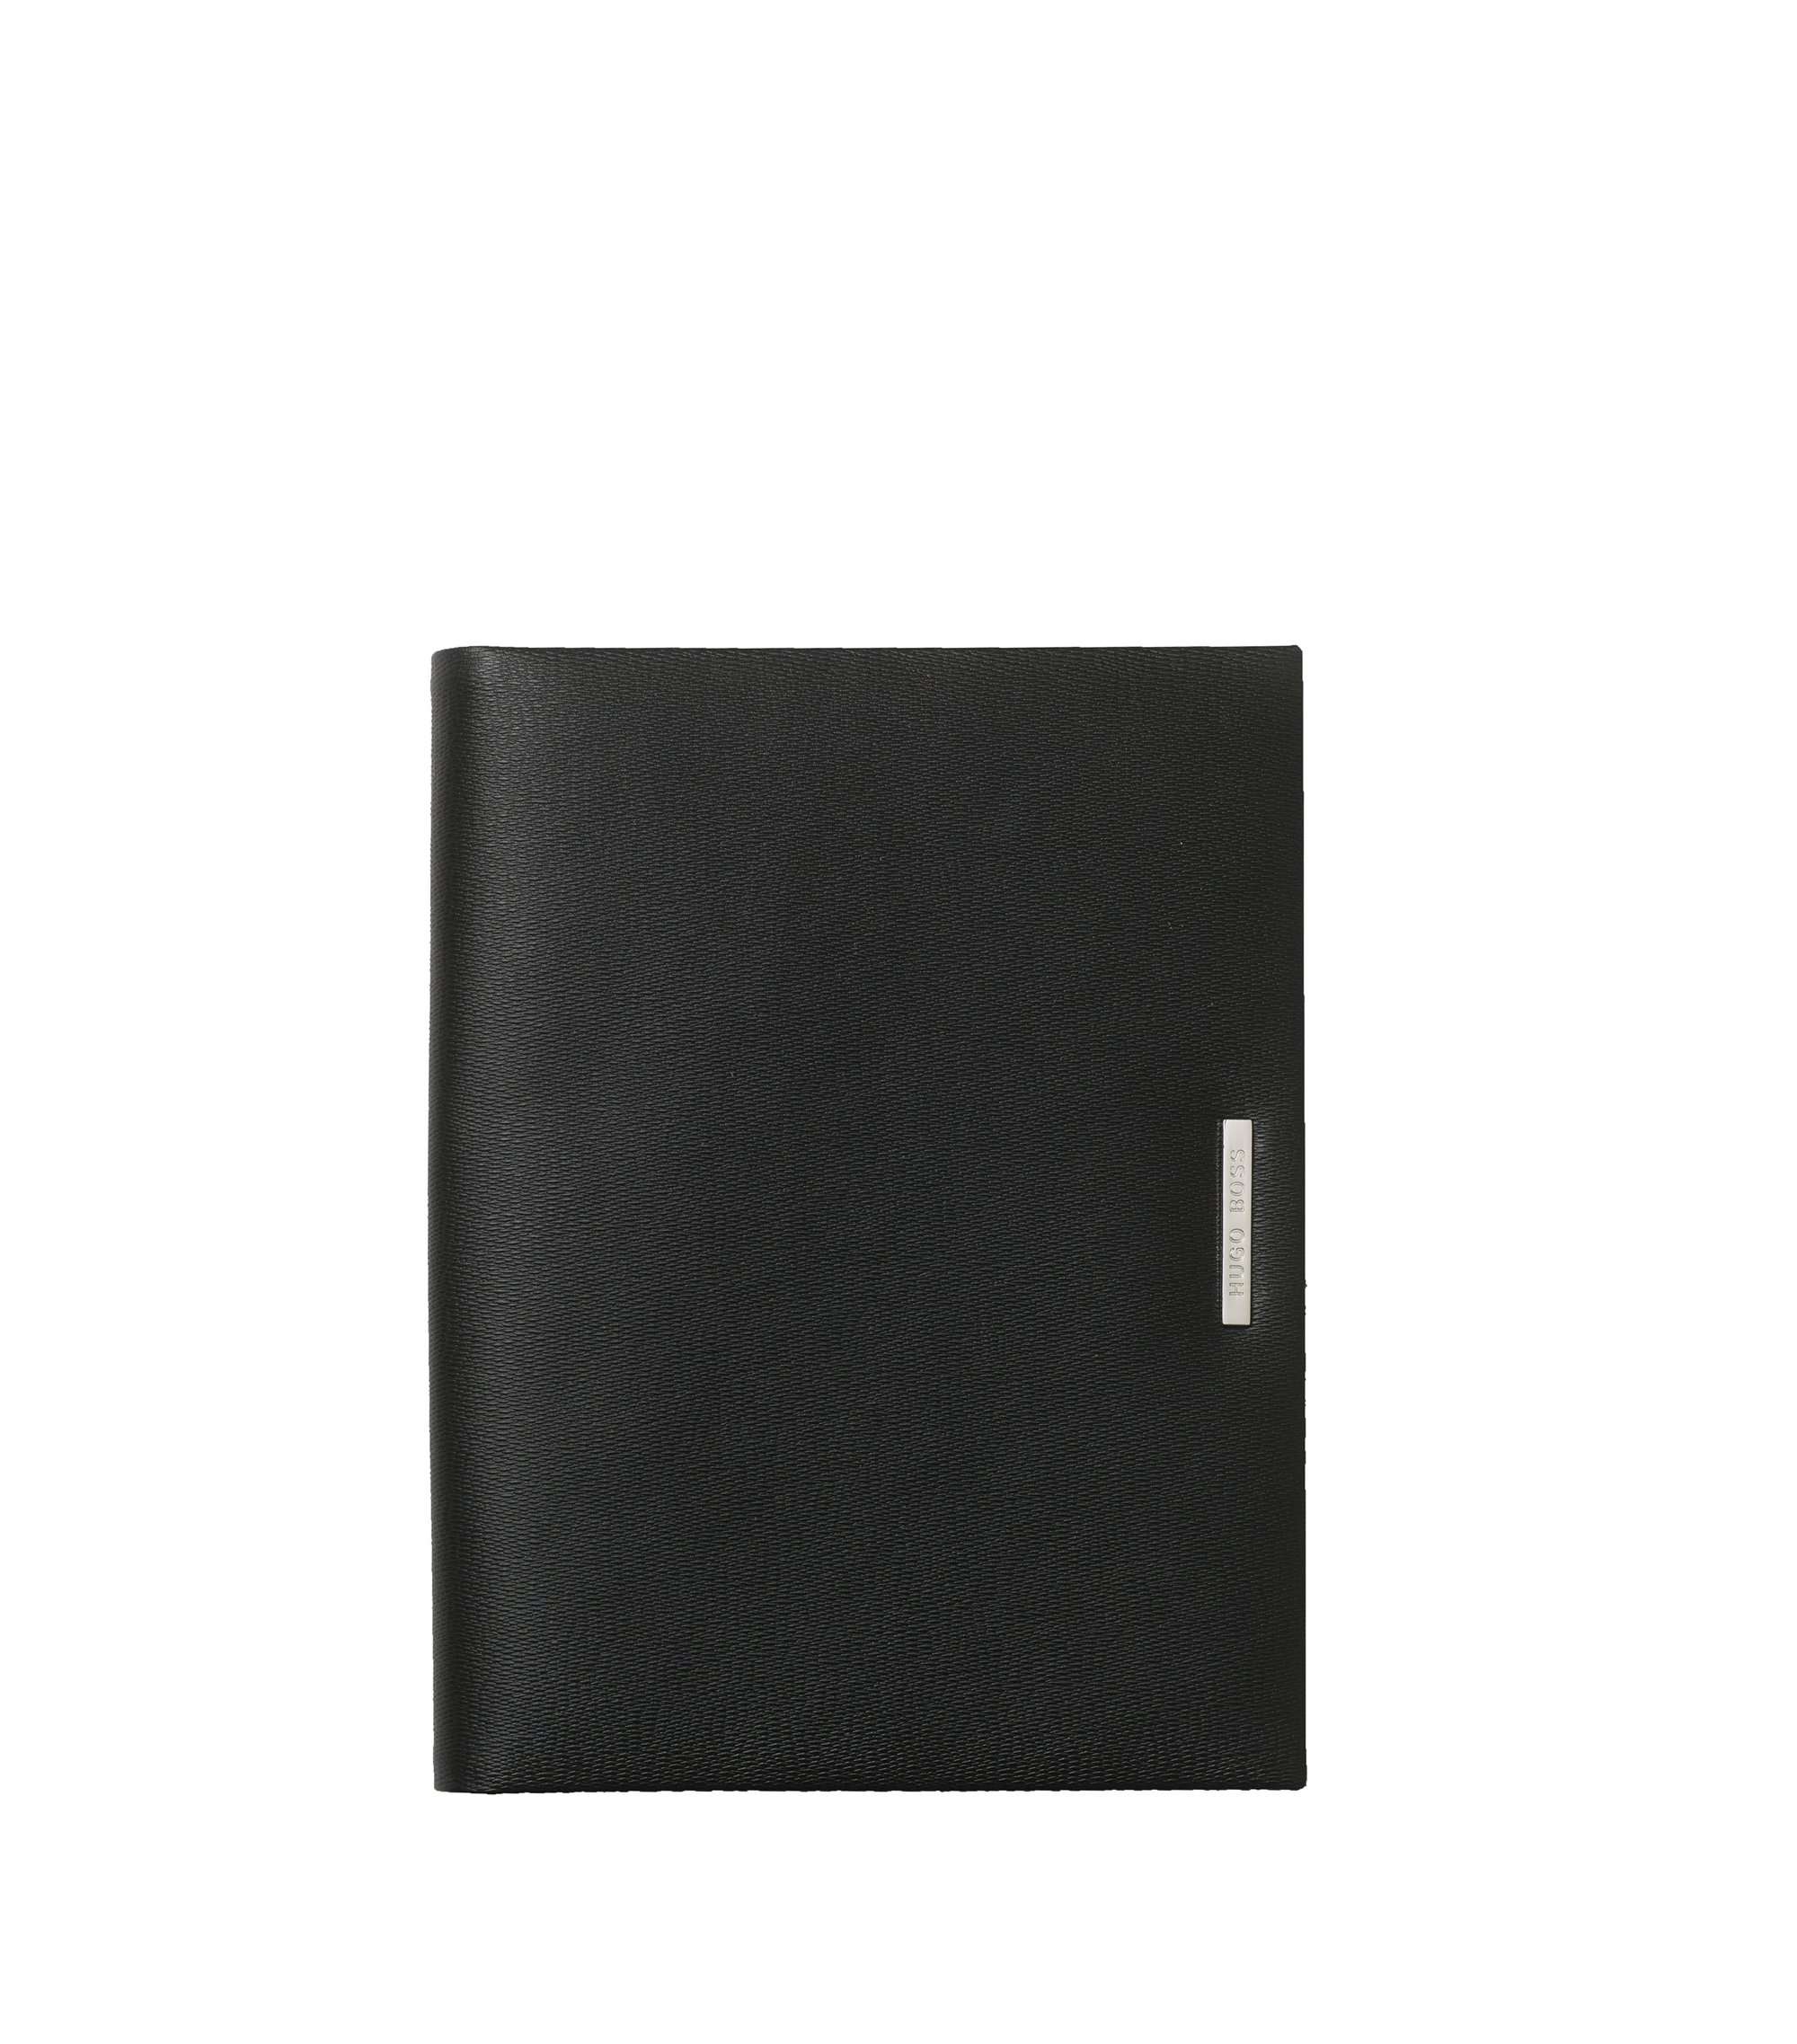 DIN A5 leather folder: 'Advance', Black